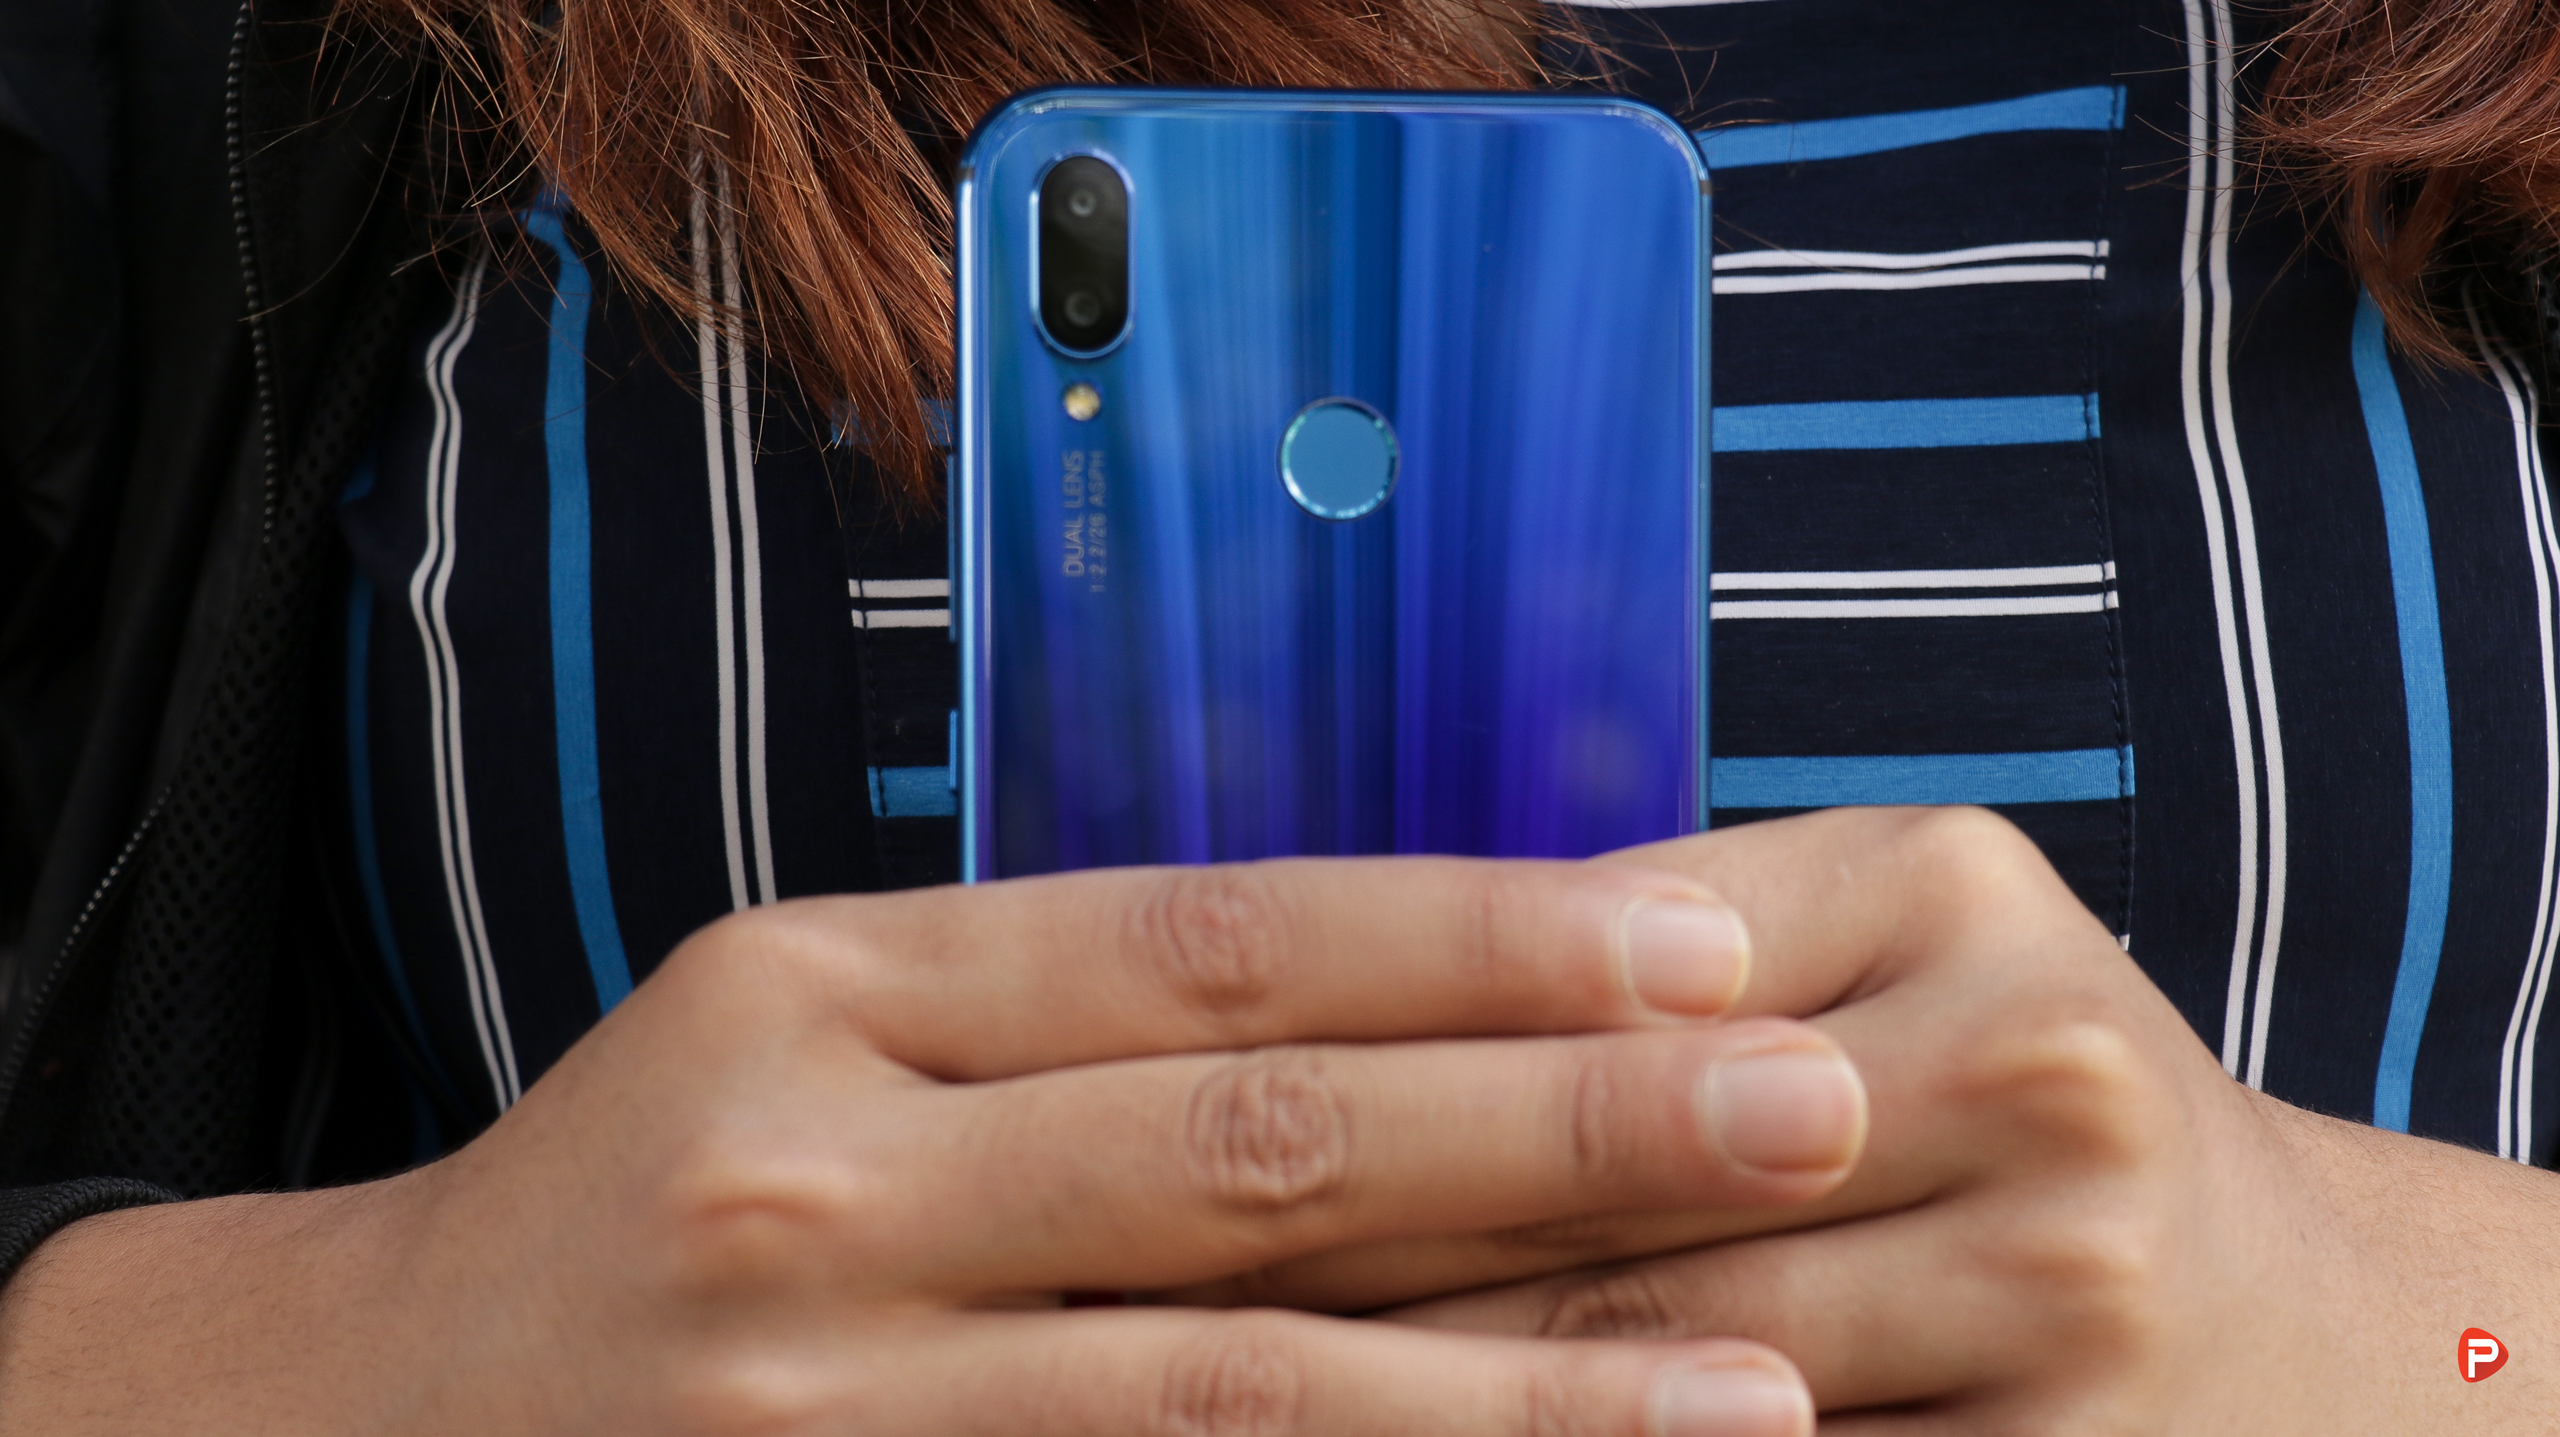 Huawei Nova 3i review in Nepal